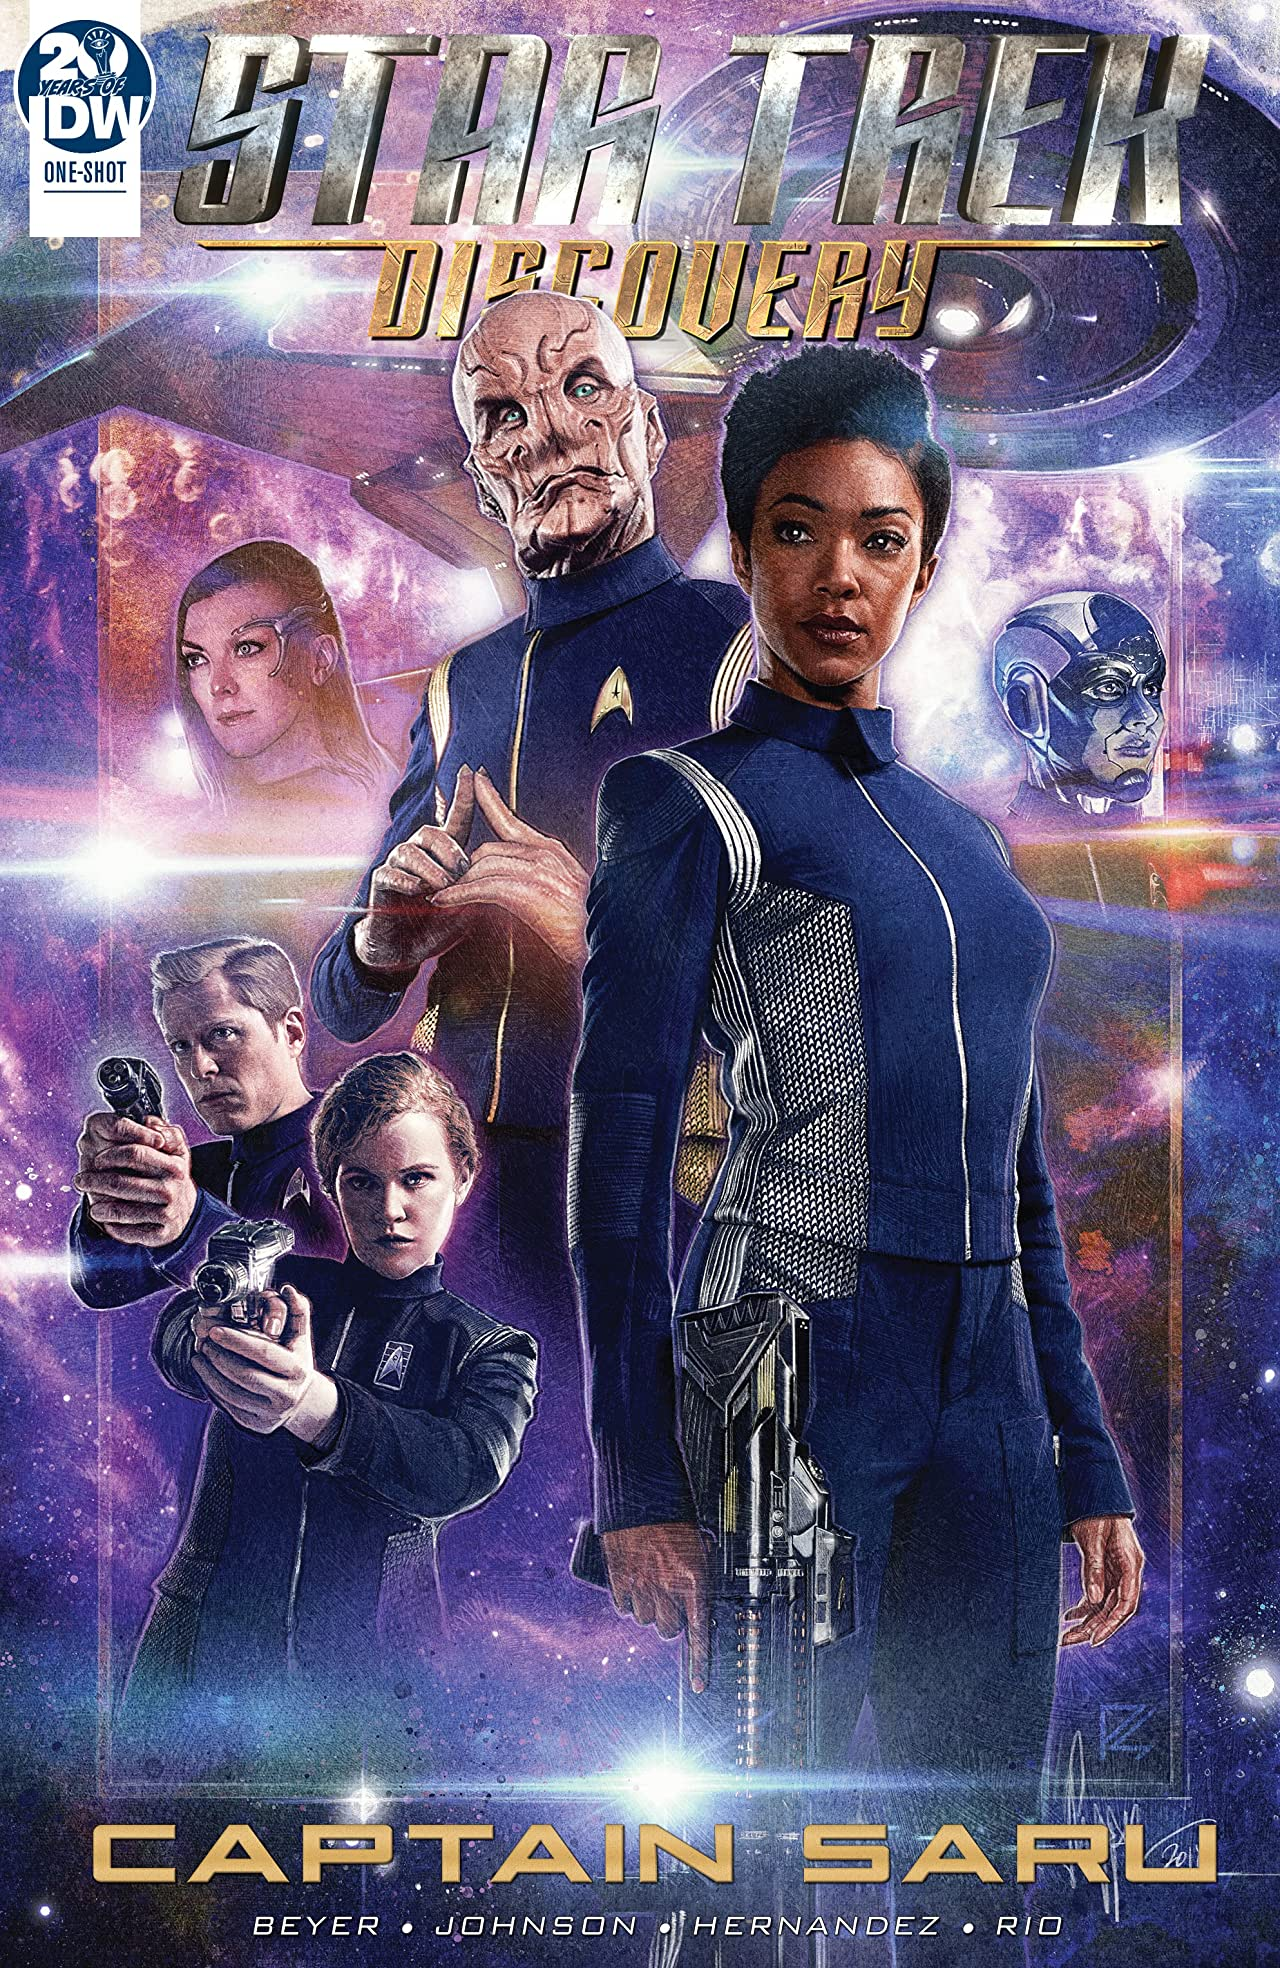 Star Trek: Discovery Annual 2019—Captain Saru